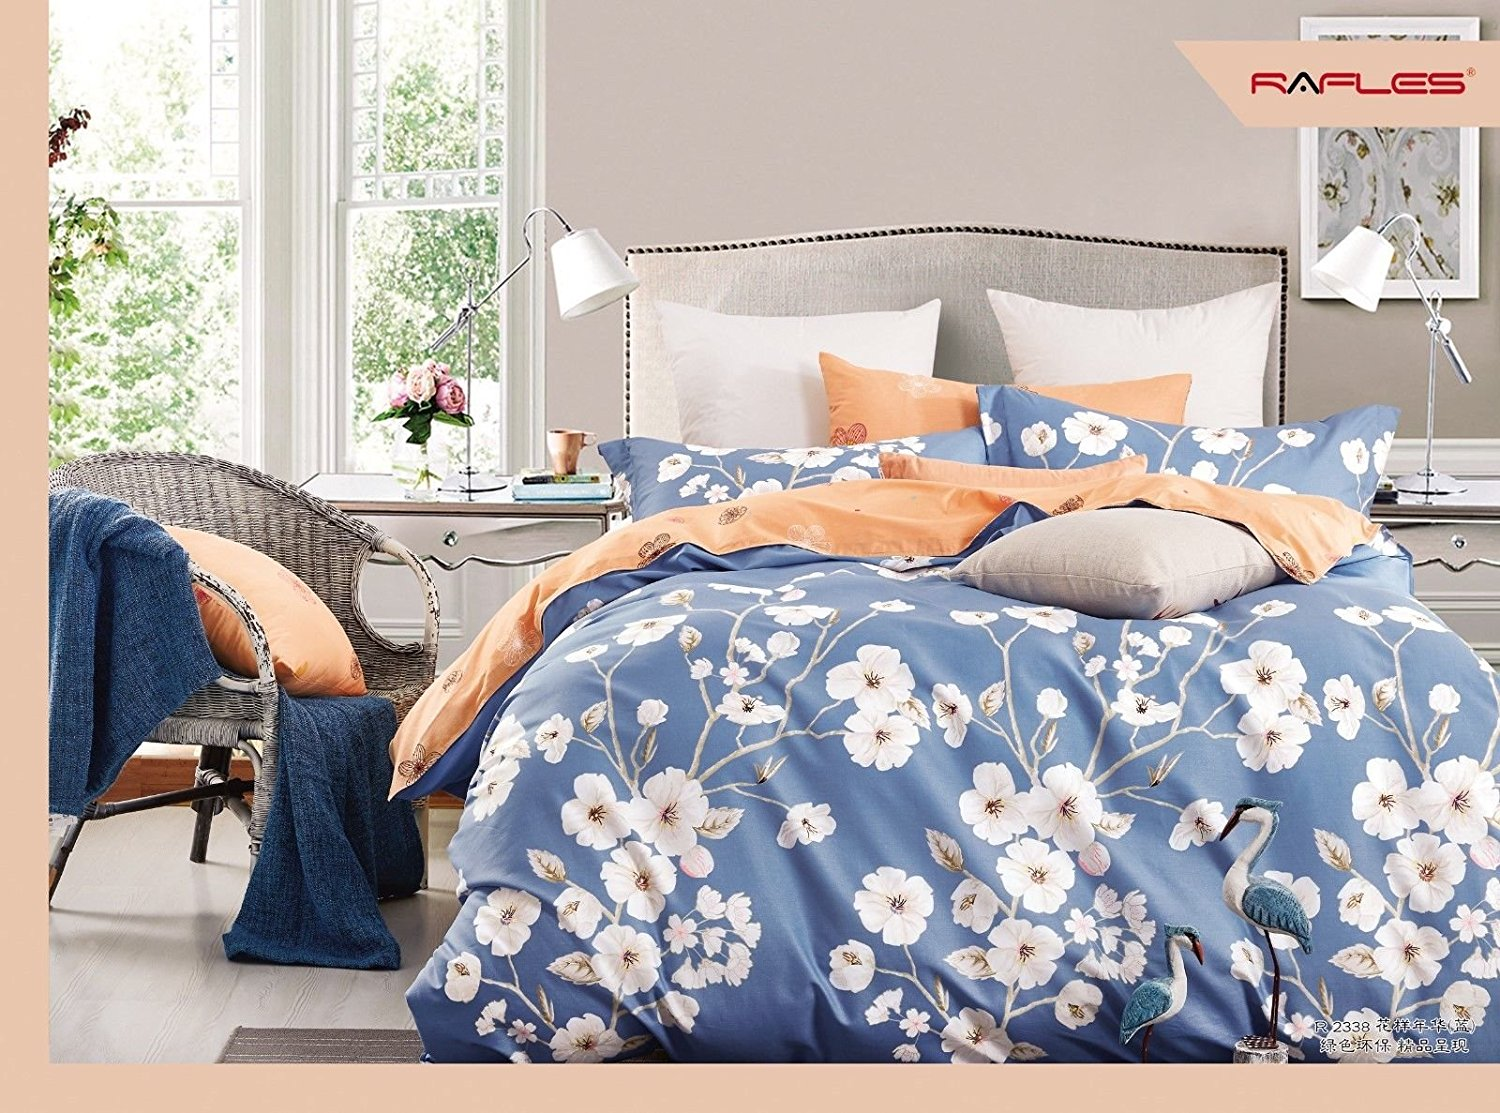 King Bed Duvet Set (Design 4)